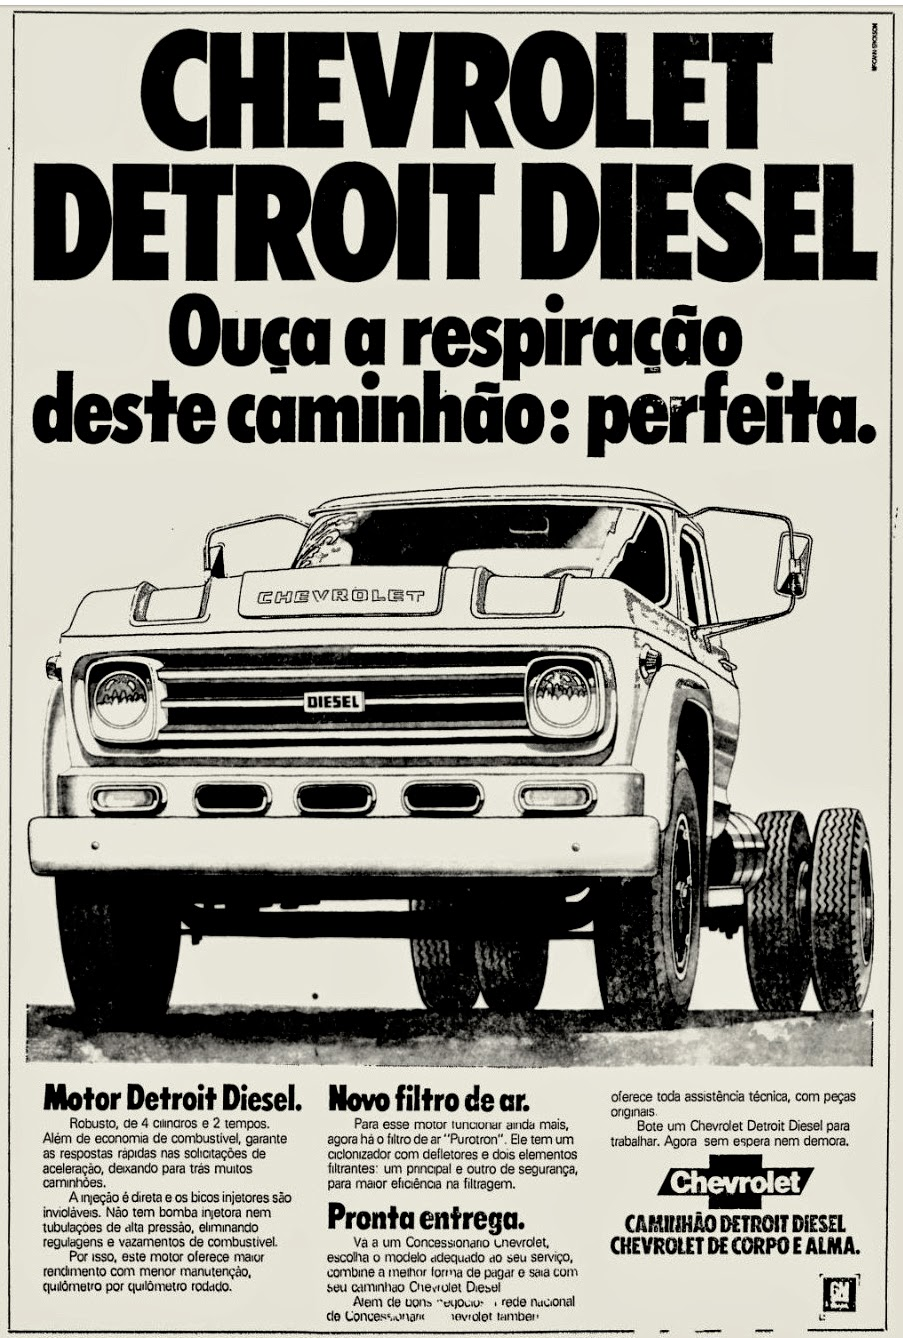 Chevrolet . reclame de carros anos 70. brazilian advertising cars in the 70. os anos 70. história da década de 70; Brazil in the 70s; propaganda carros anos 70; Oswaldo Hernandez;